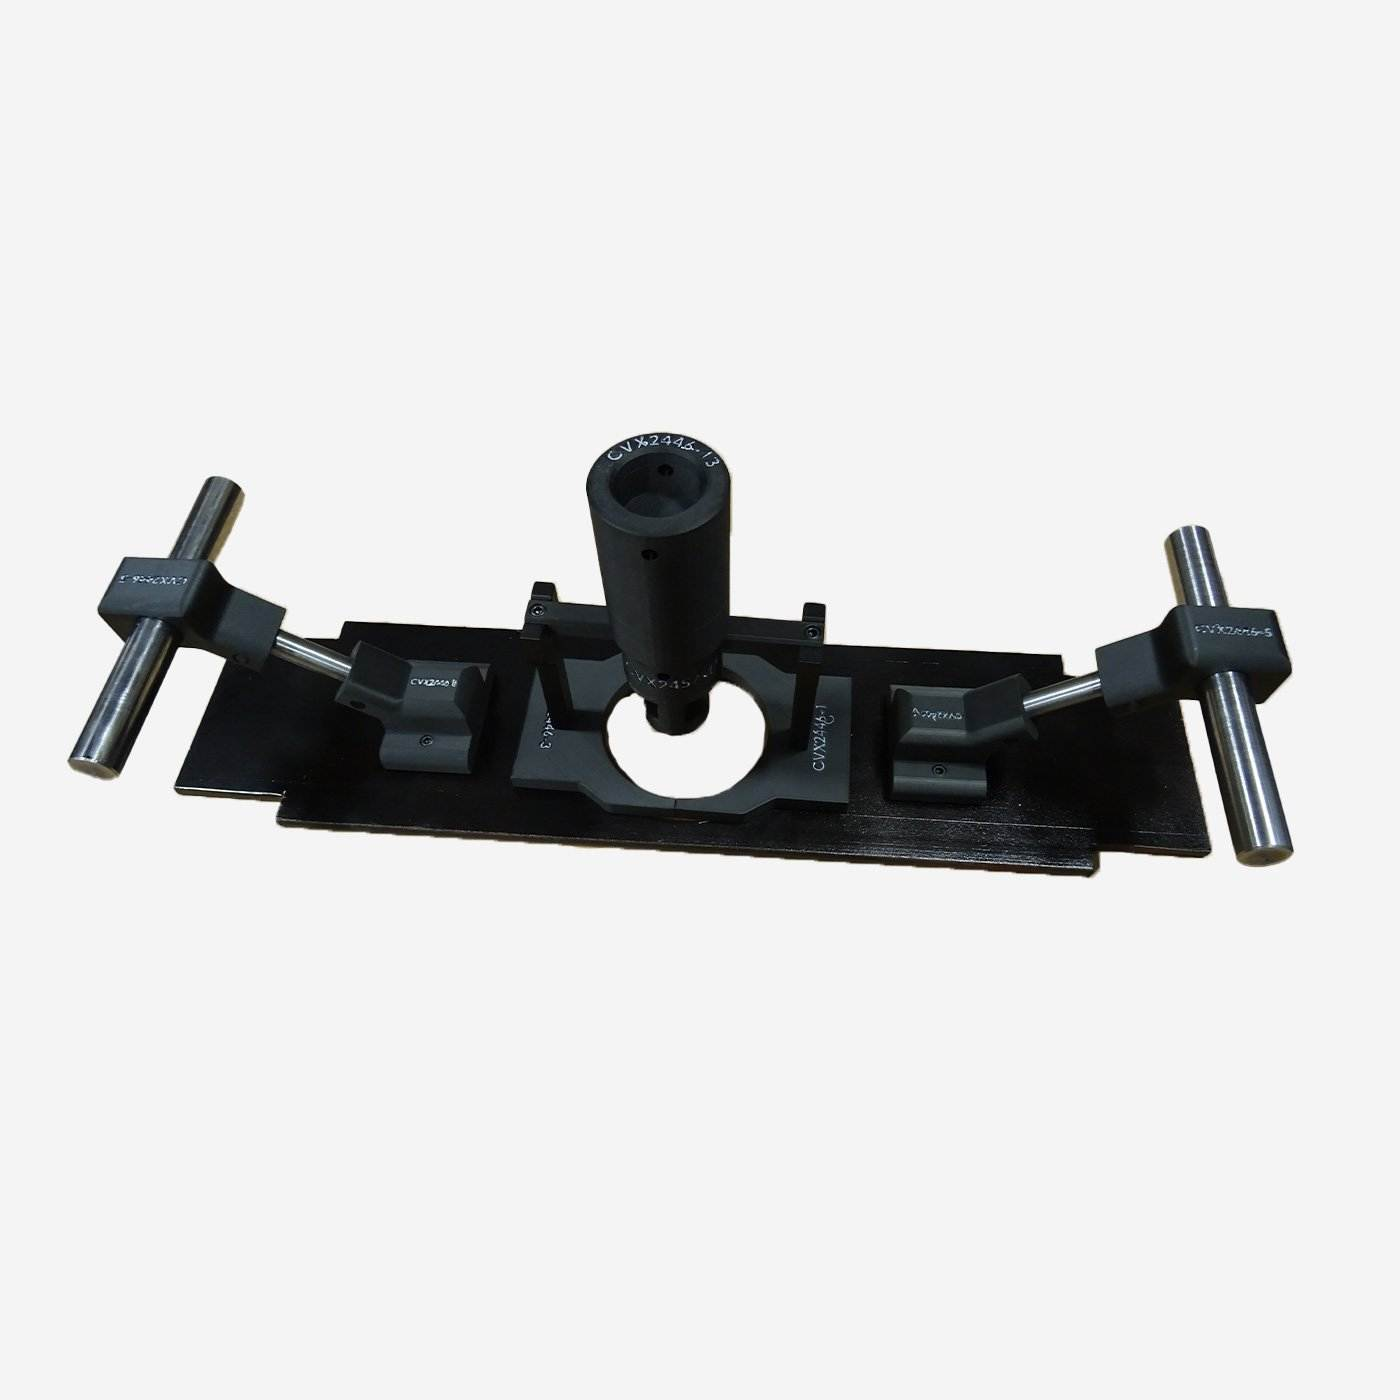 Electric Vehicle Suspension Assembly Tool